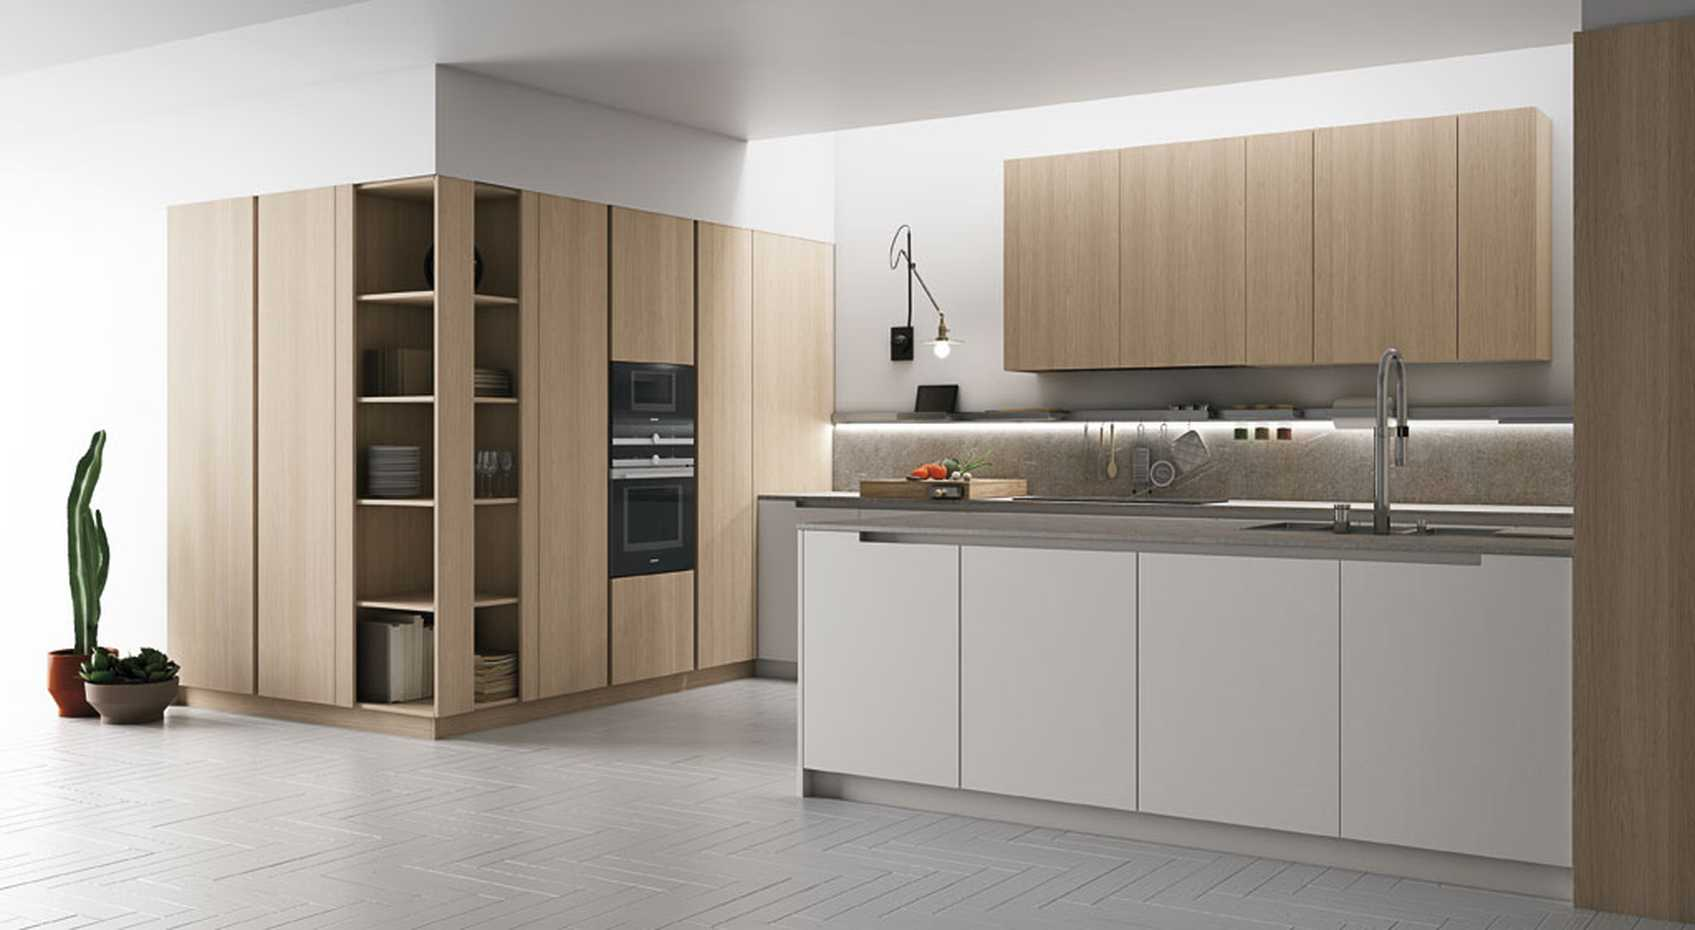 Style by Doimo Cucine product image 8